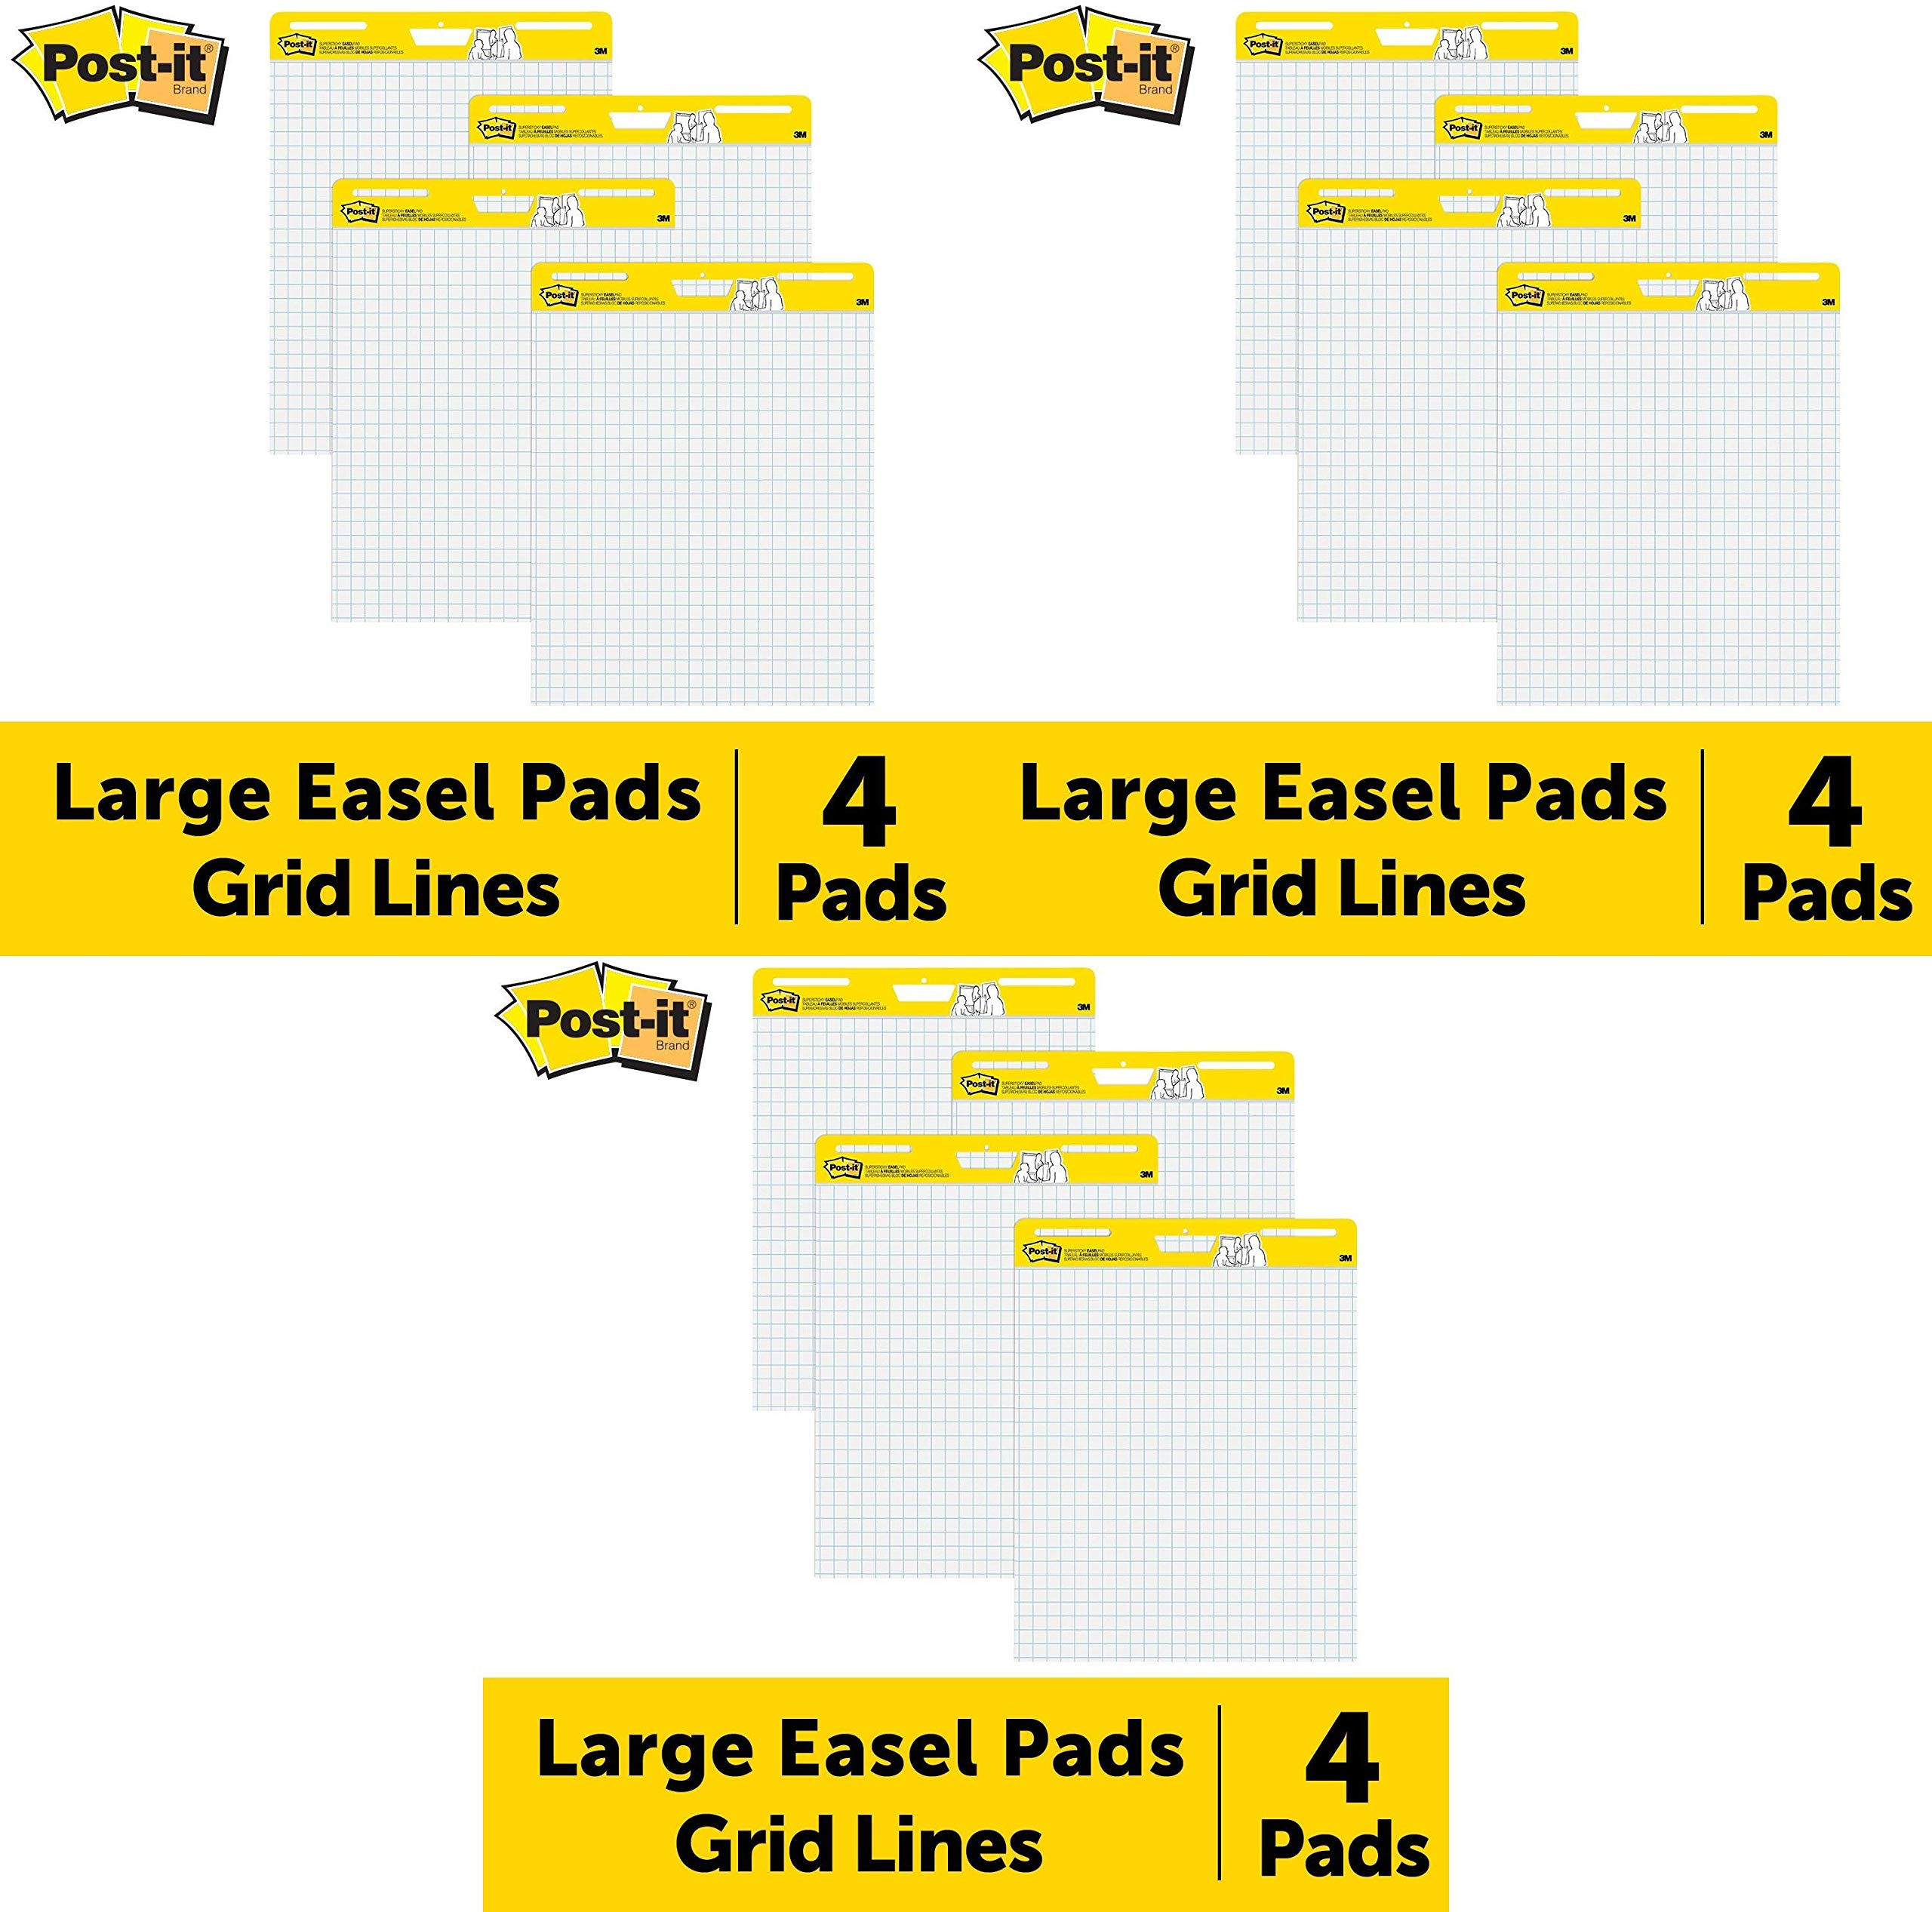 Post-it Easel Pad, 25 in x 30 in, 4 Pads per Pack, Blue Grid (560 VAD 4PK) Pack of 3 by Post-it